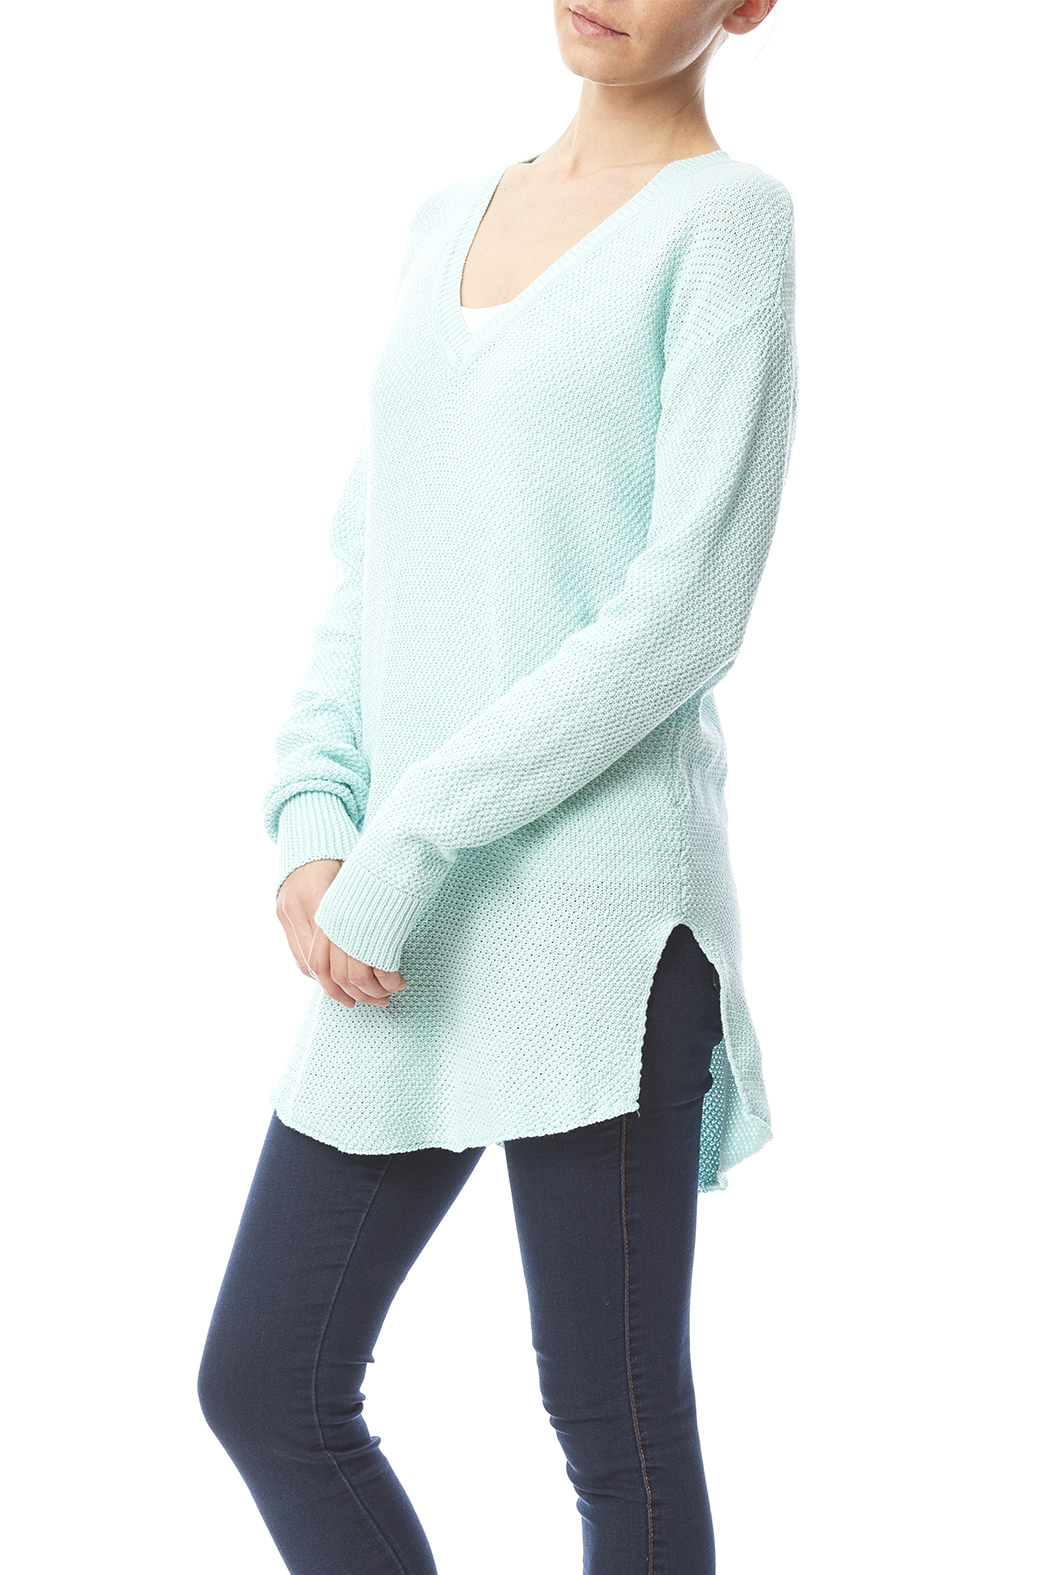 43b8c046af786 Ellison Easy Breezy Sweater from Charleston by Apricot Lane ...